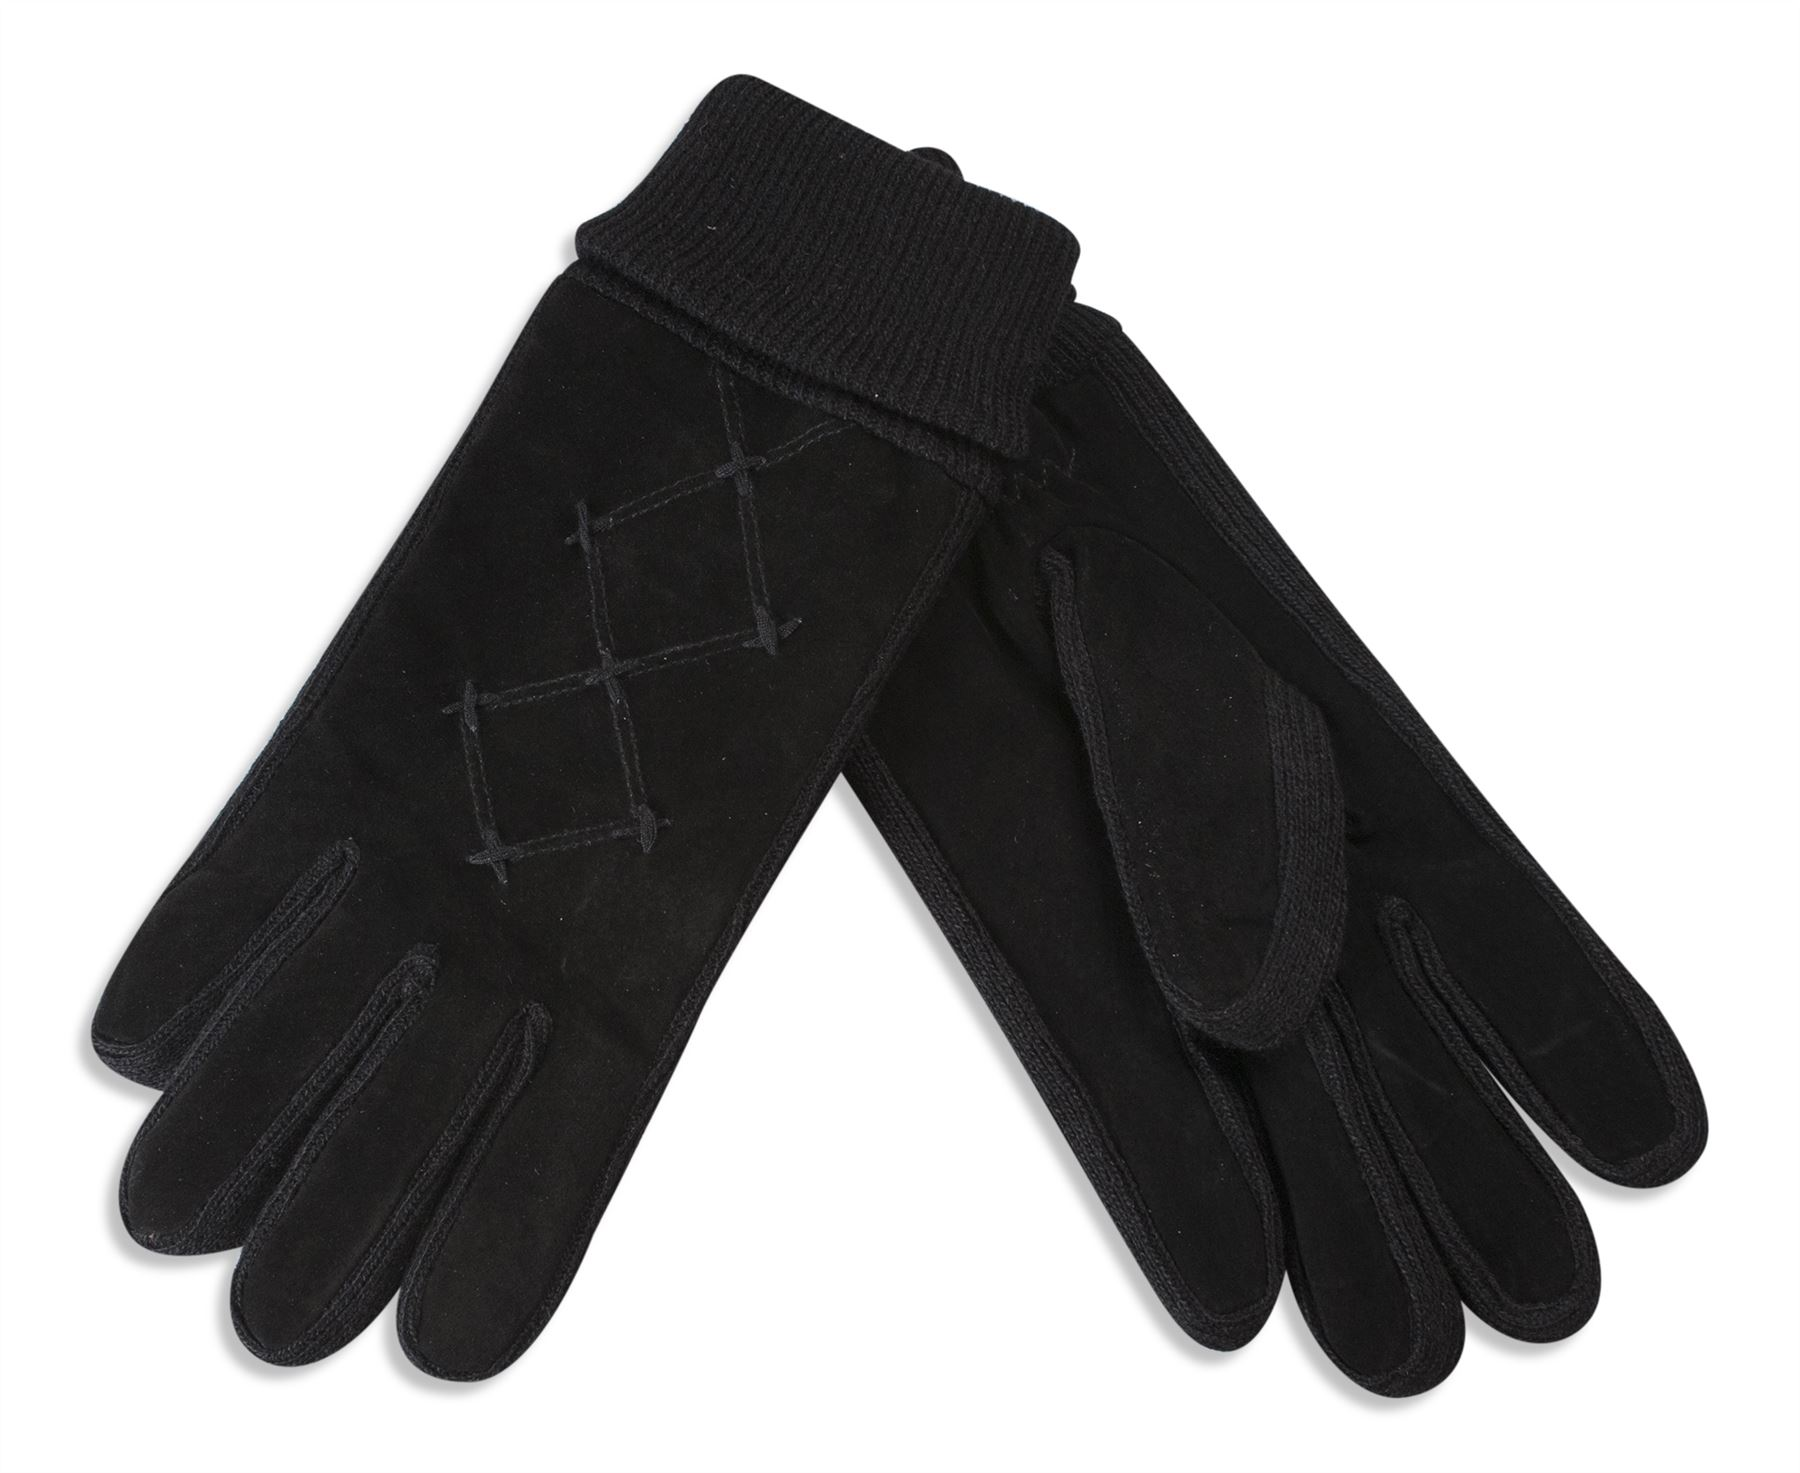 Womens leather gloves thinsulate lining - Brilliant Suede Leather Gloves With An Extra Warm Thinsulate Lining